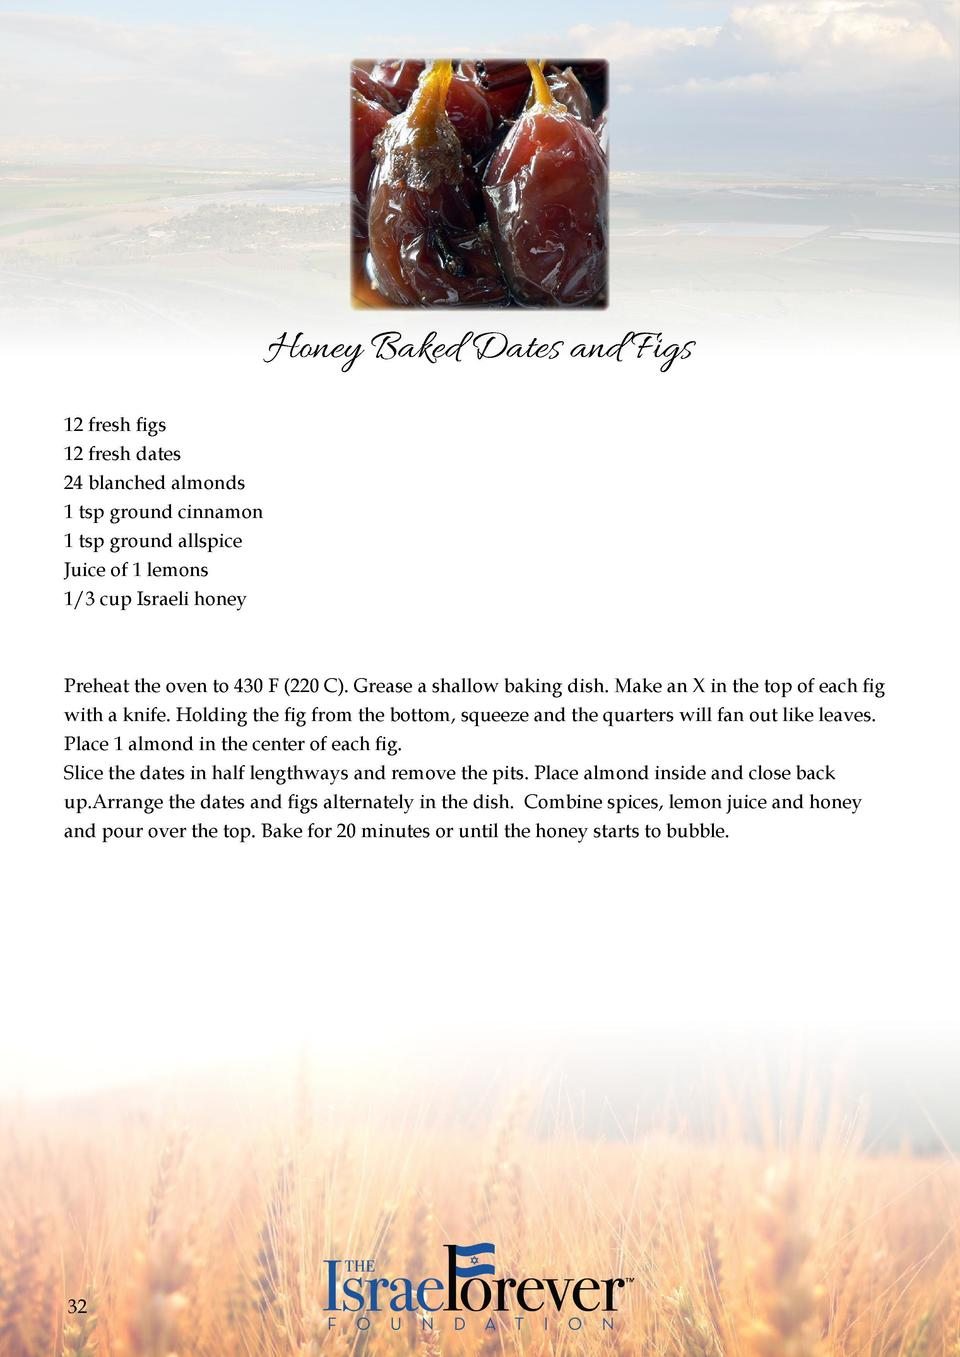 Honey Baked Dates and Figs 12 fresh  figs 12 fresh  dates 24 blanched almonds 1 tsp ground  cinnamon 1 tsp  ground allspic...